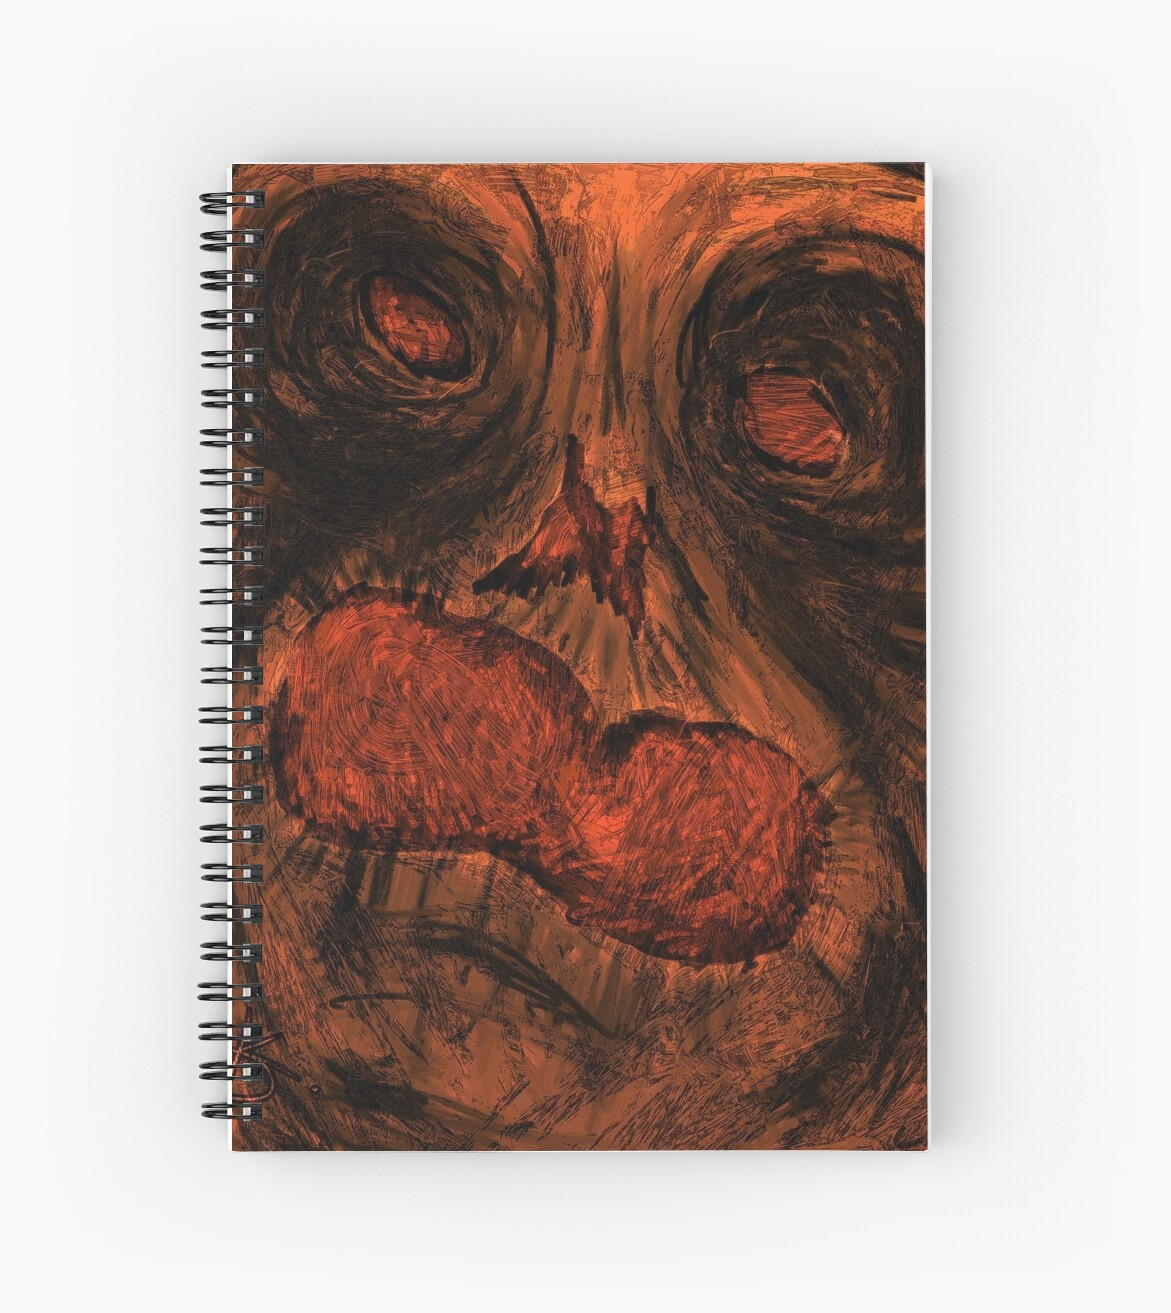 Necronomicon inspired notebook by smabd-sadmin